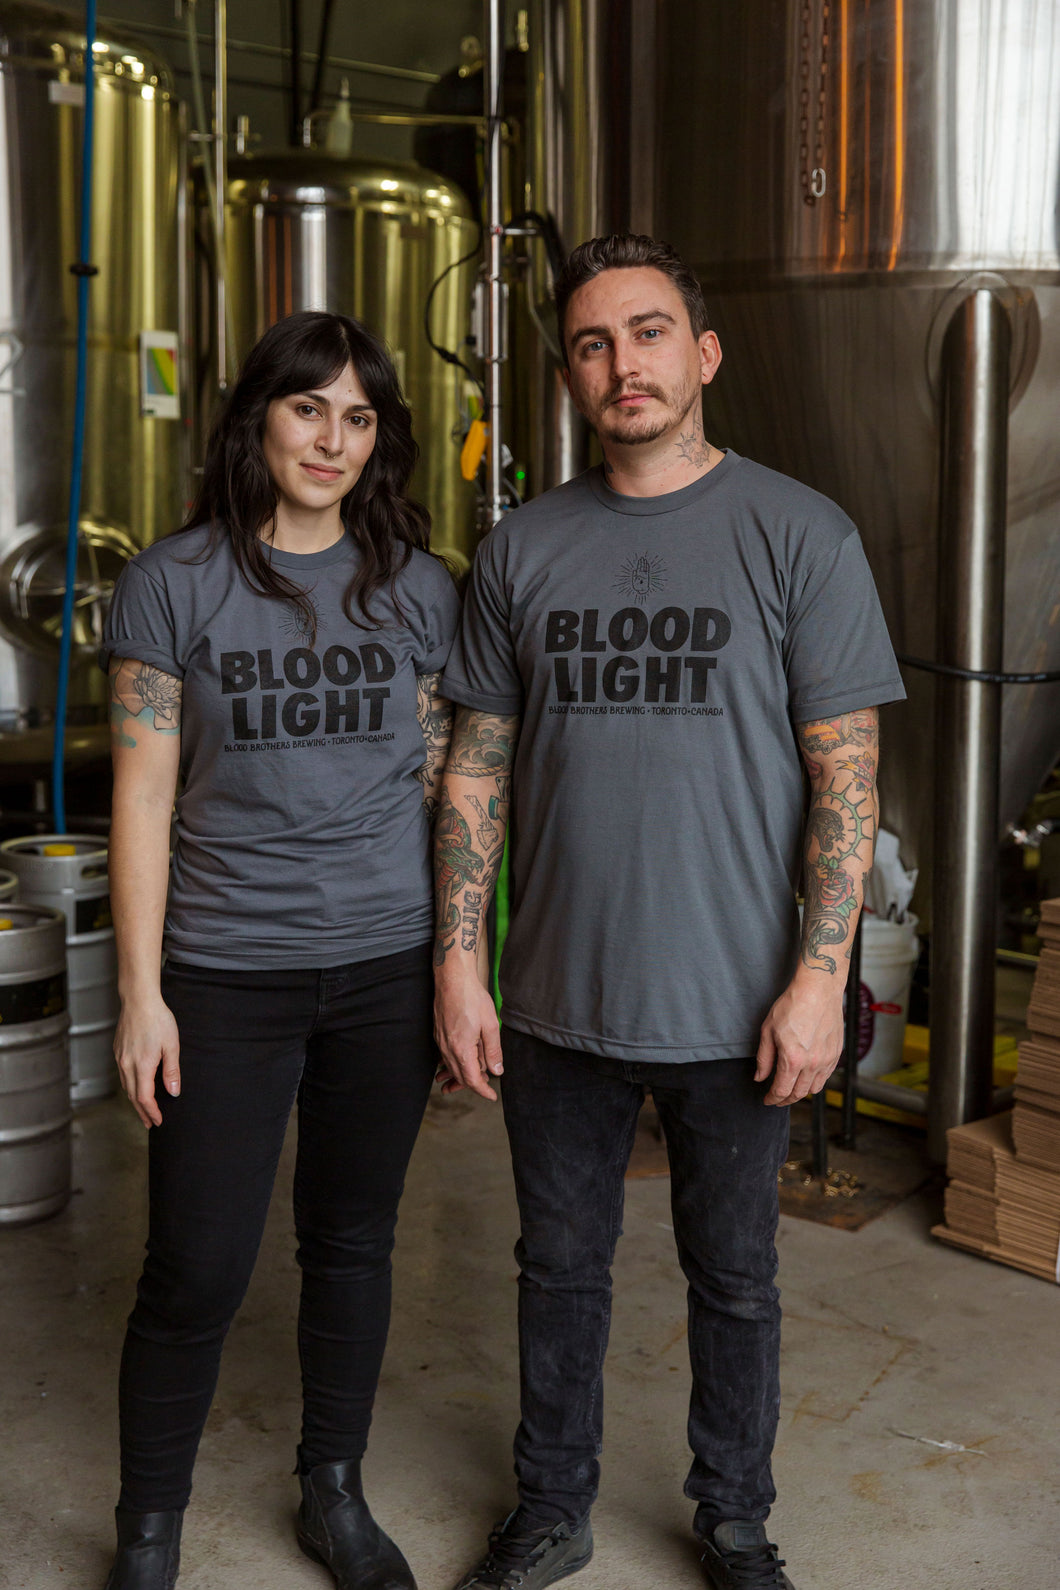 BLOOD LIGHT TEE - UNISEX